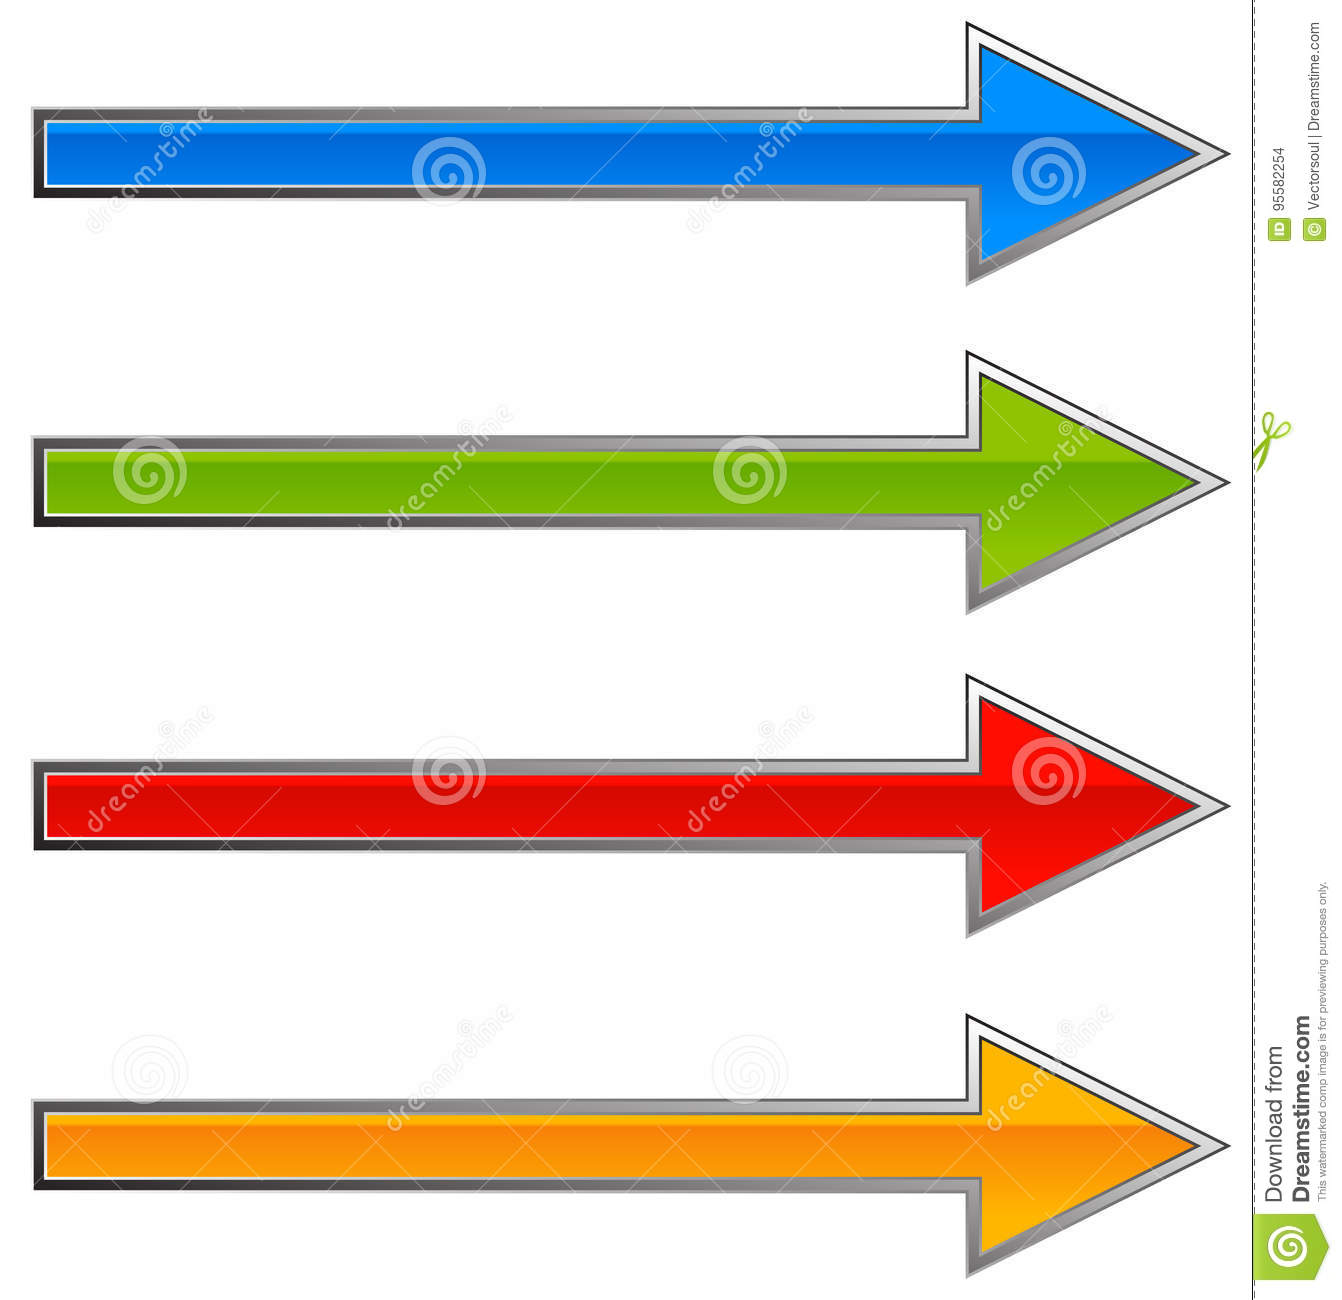 Colorful Arrow Template  Arrow Shapes In Different Colors